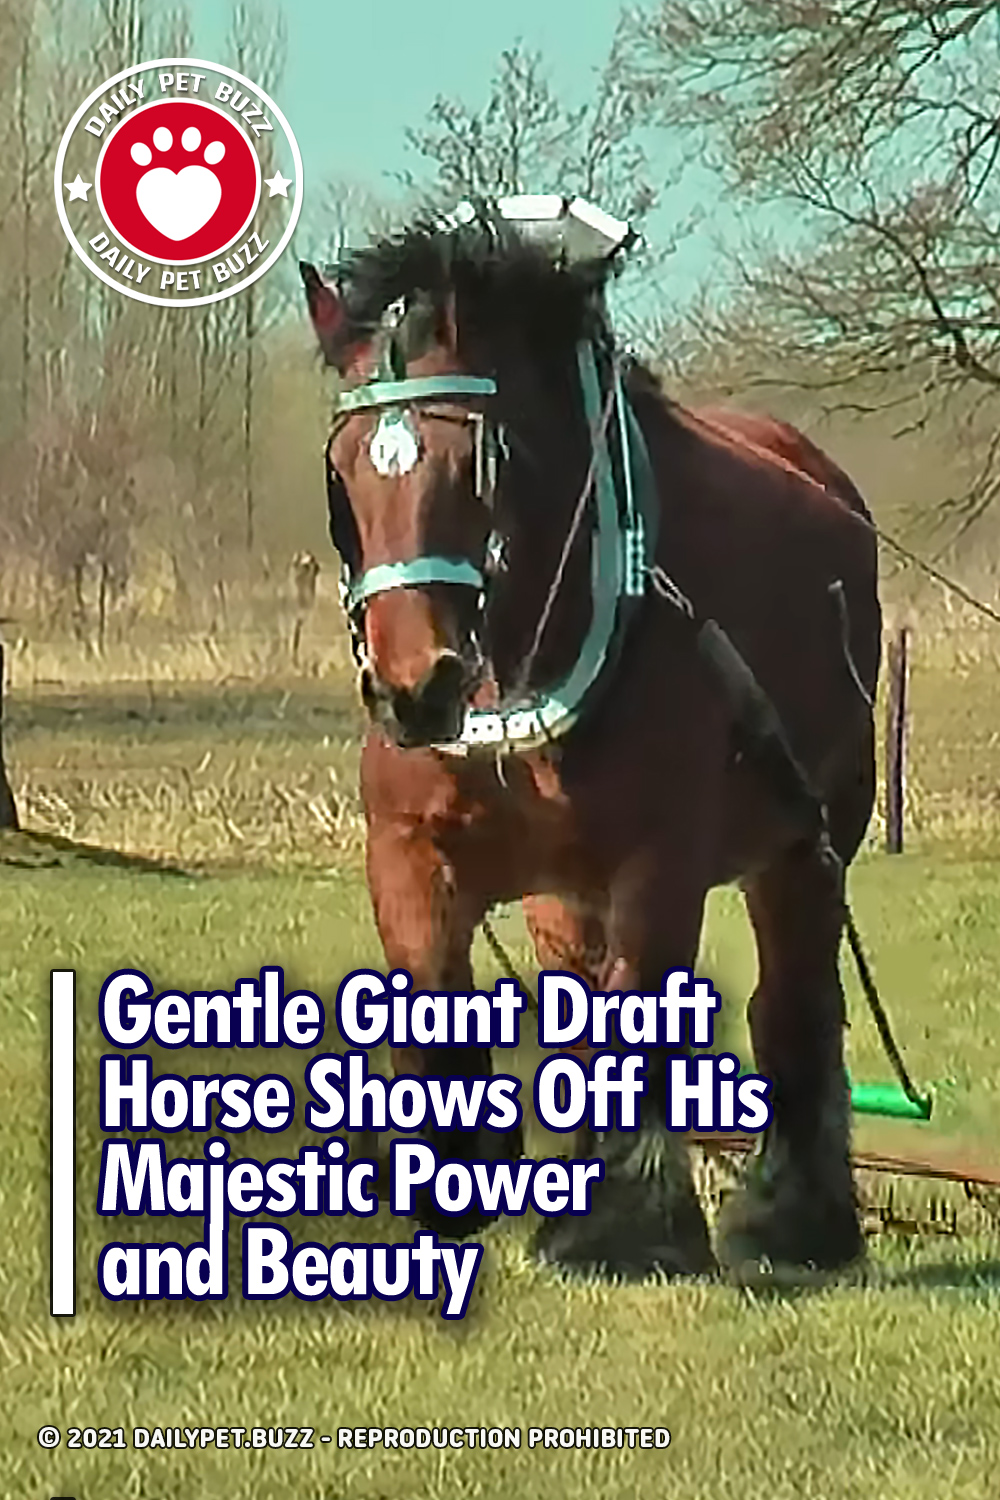 Gentle Giant Draft Horse Shows Off His Majestic Power and Beauty